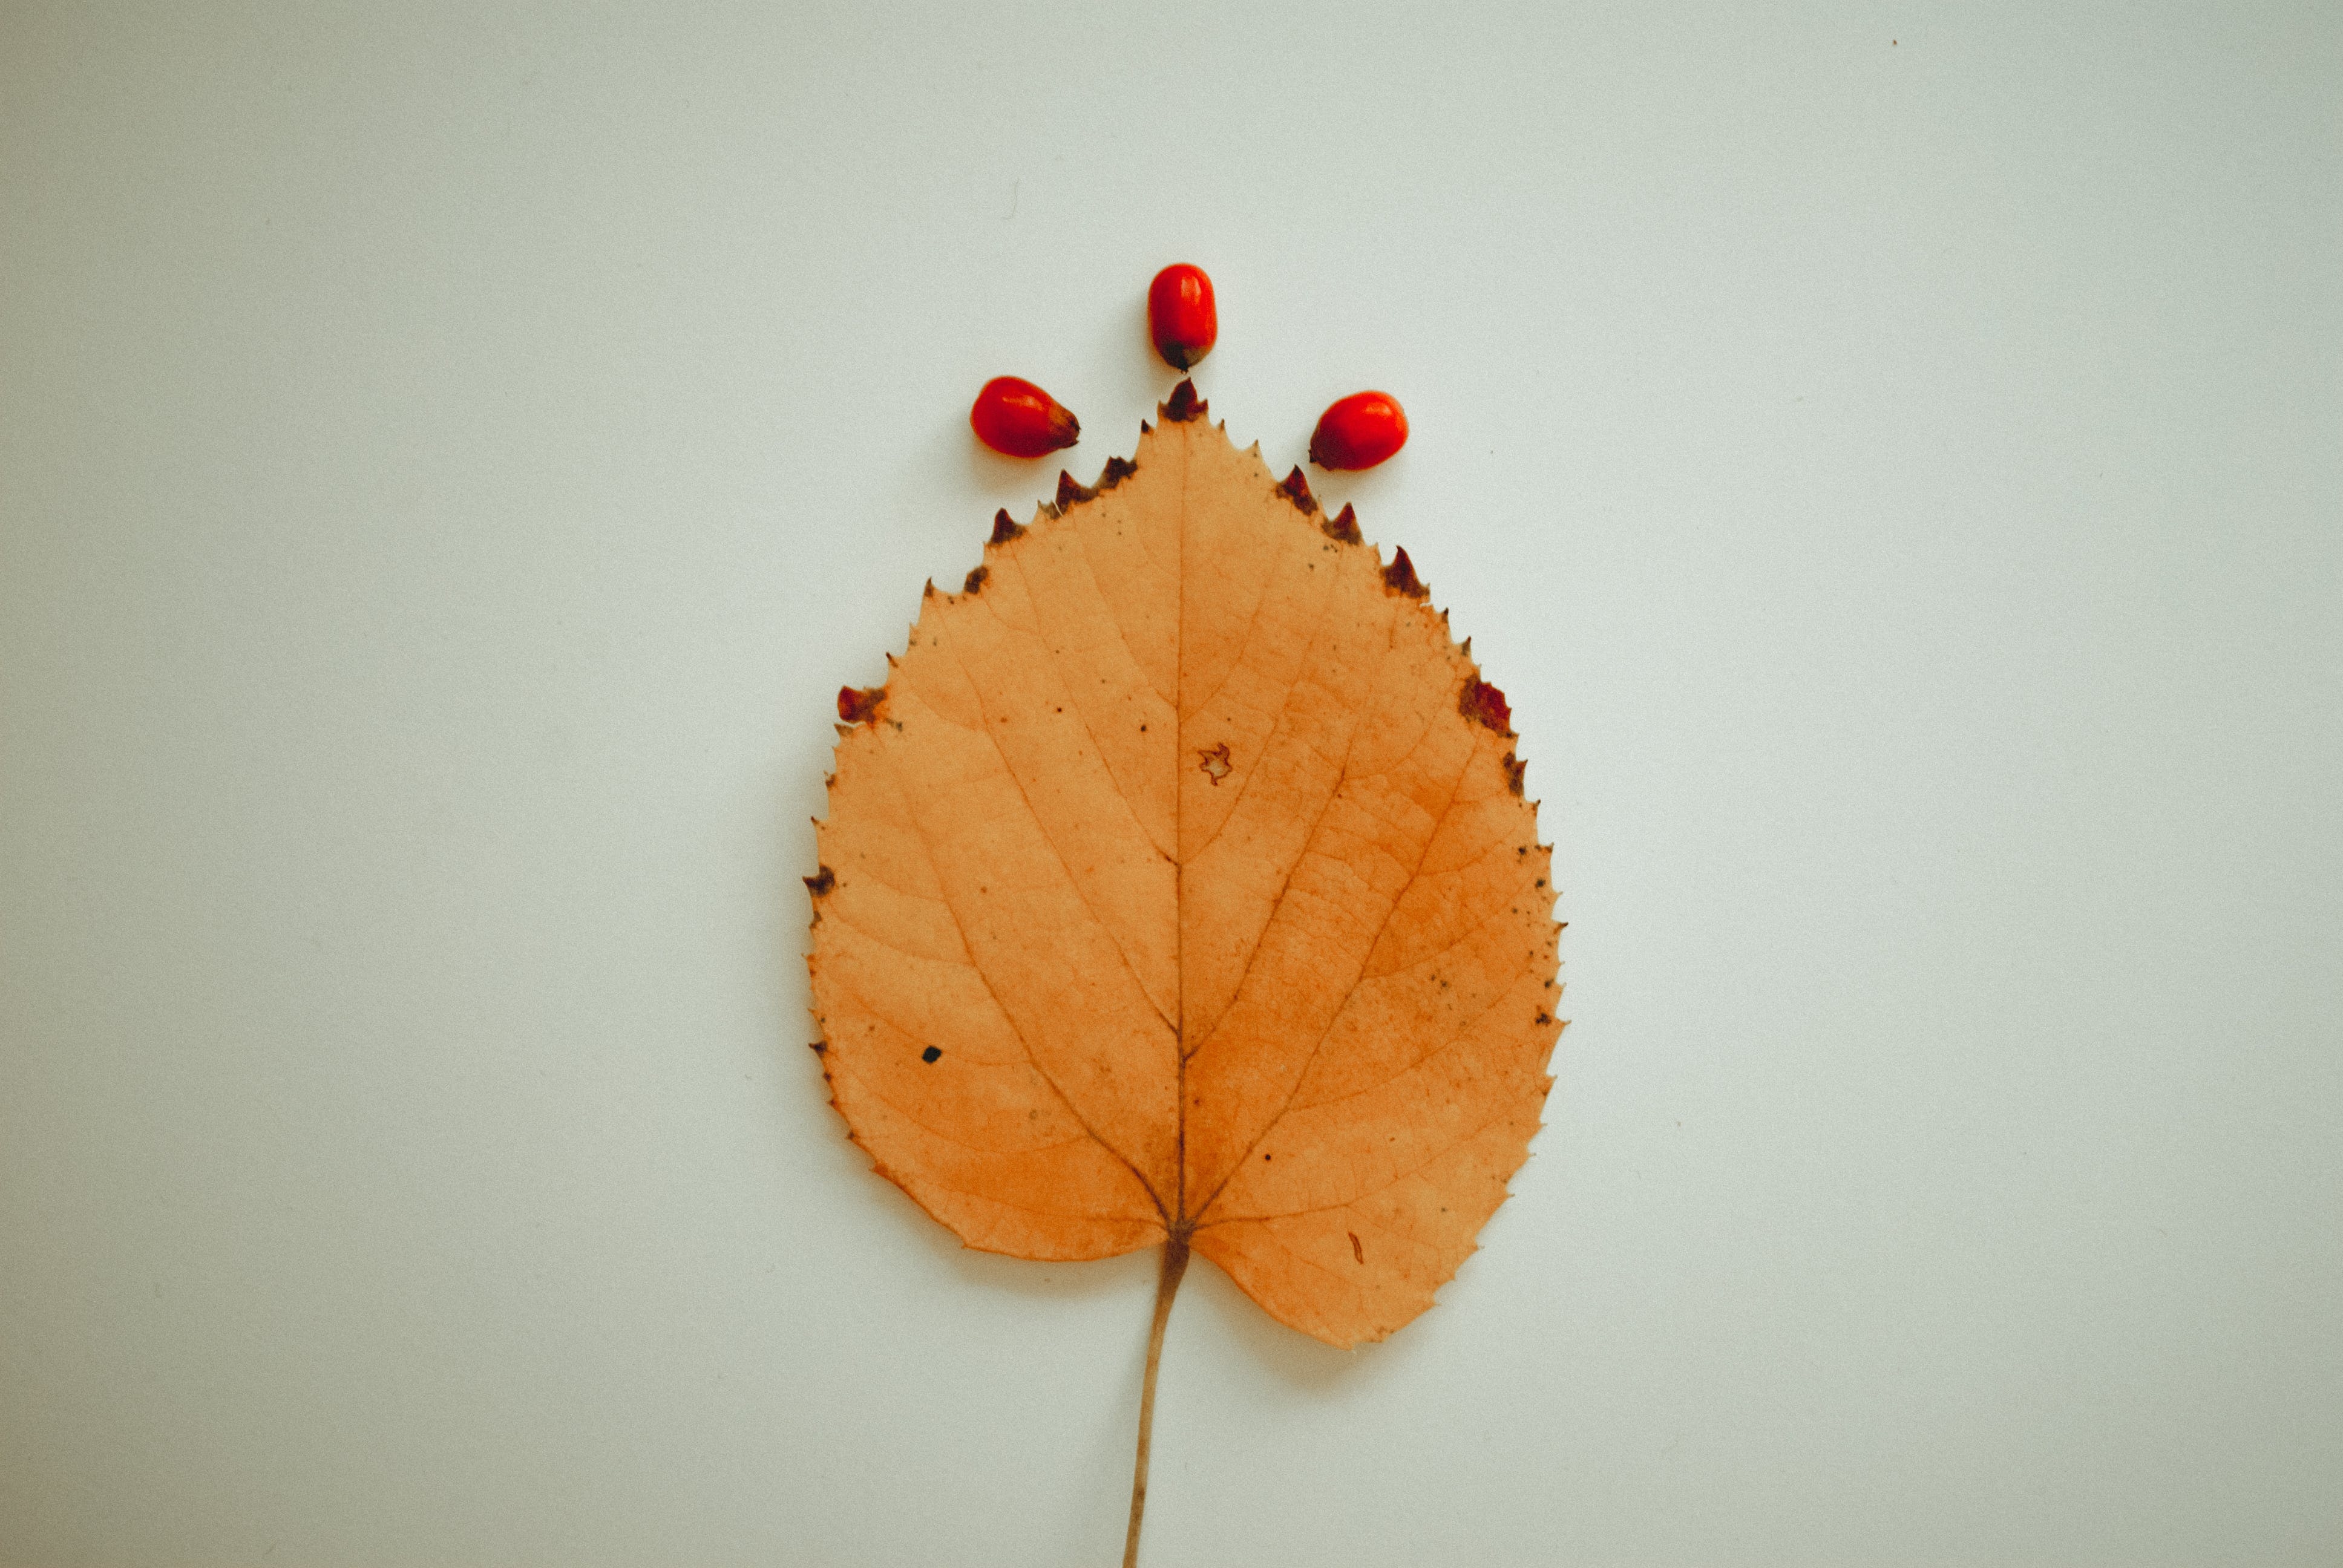 Beige Leaf and Three Red Fruits on White Surface